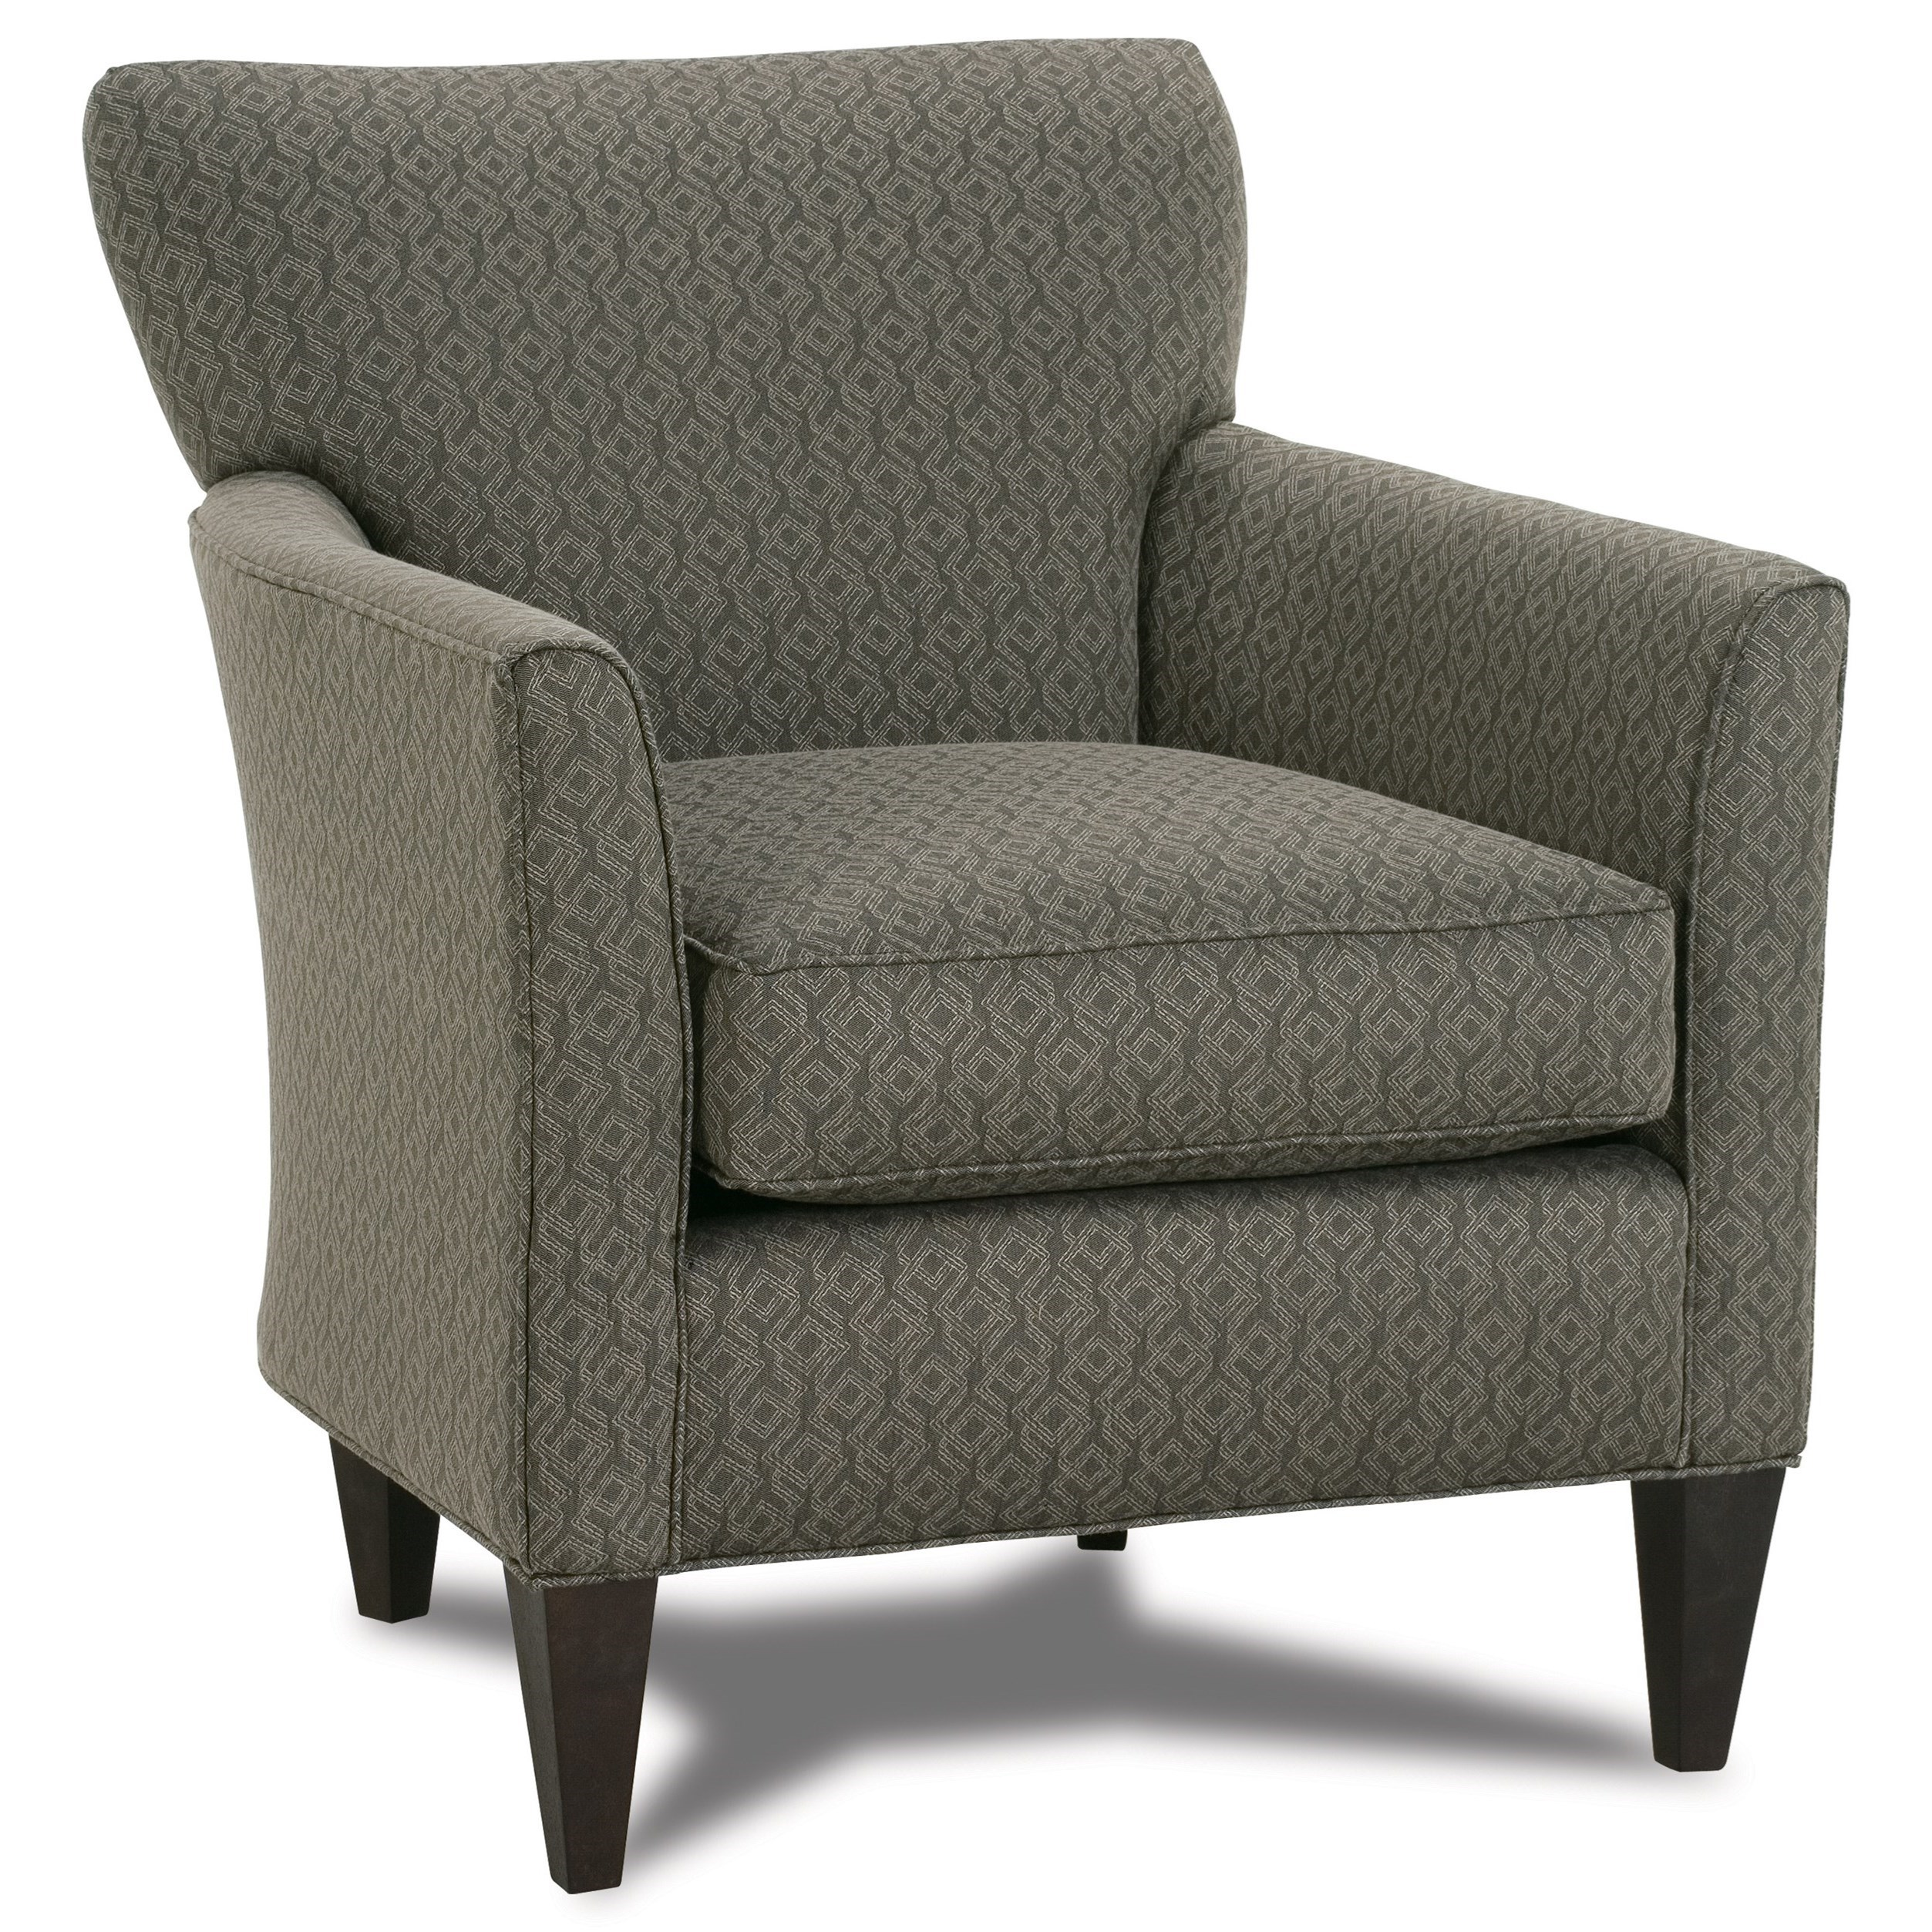 just in time tables chairs bailey chair plans rowe and accents times square accent